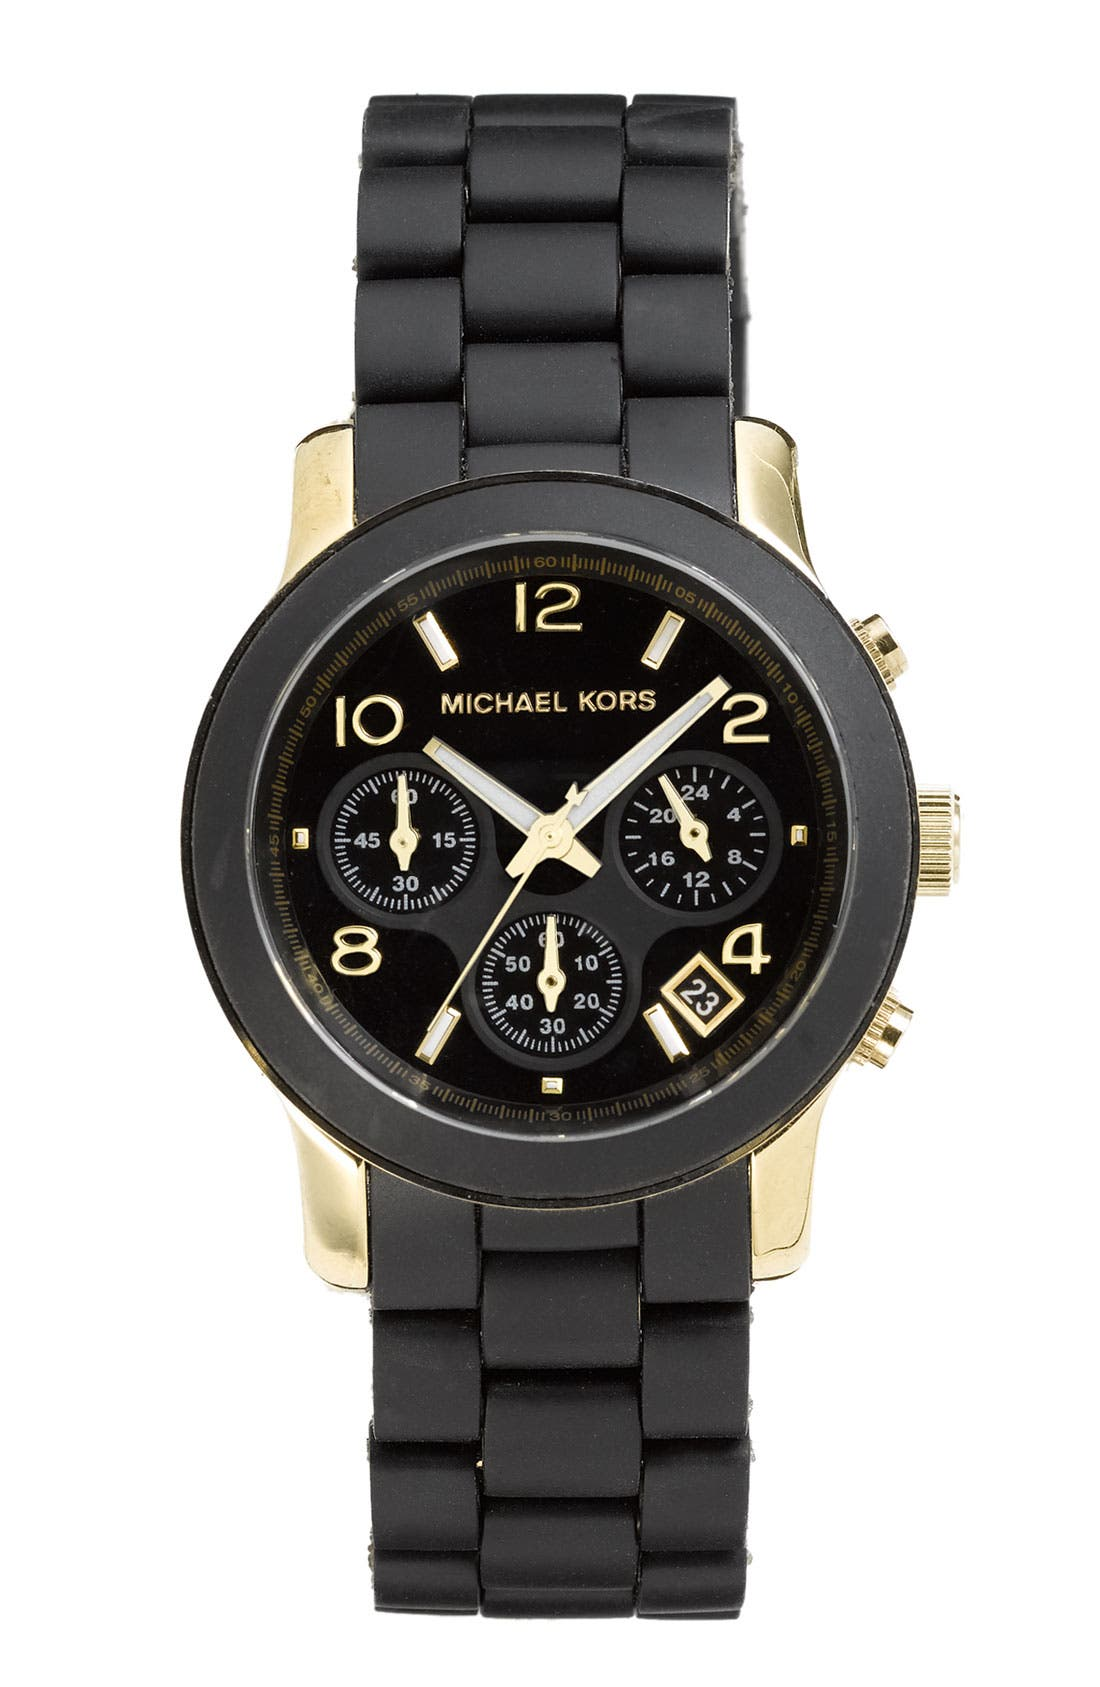 Main Image - Michael Kors 'Runway' Chronograph Watch, 38mm